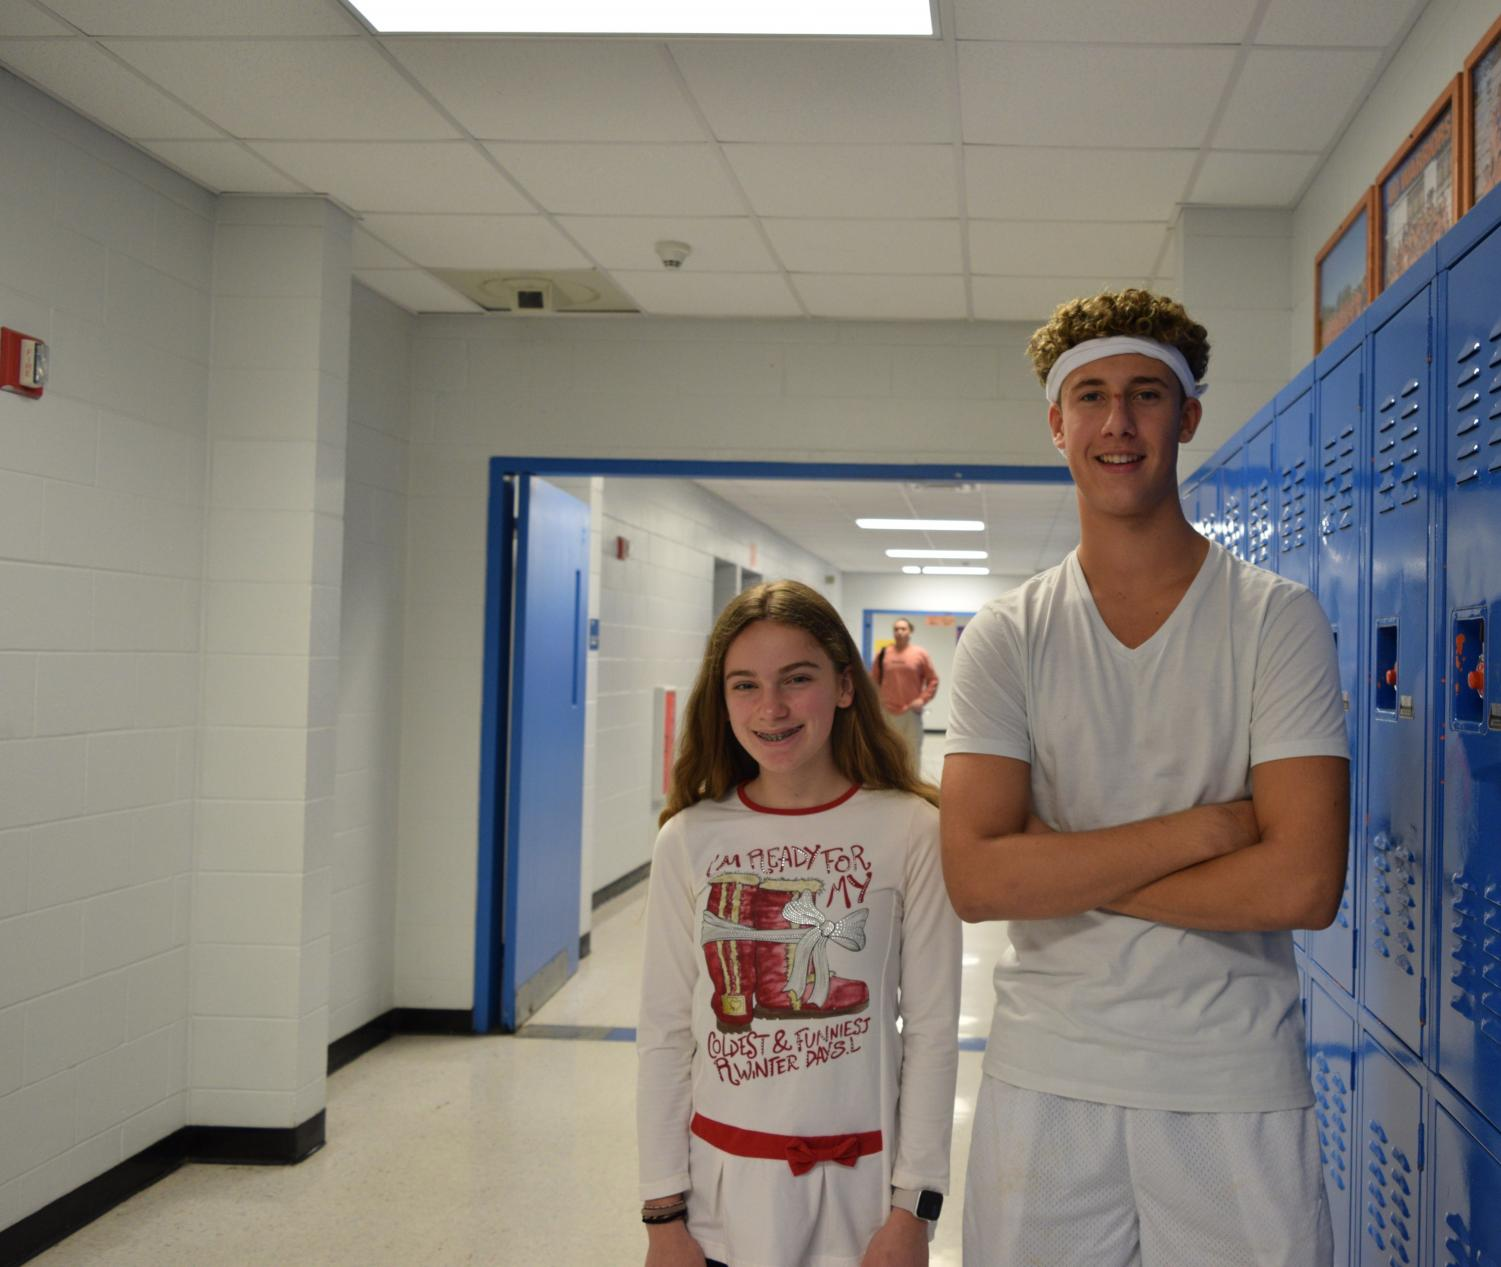 Two students get into the spirit by dressing up.